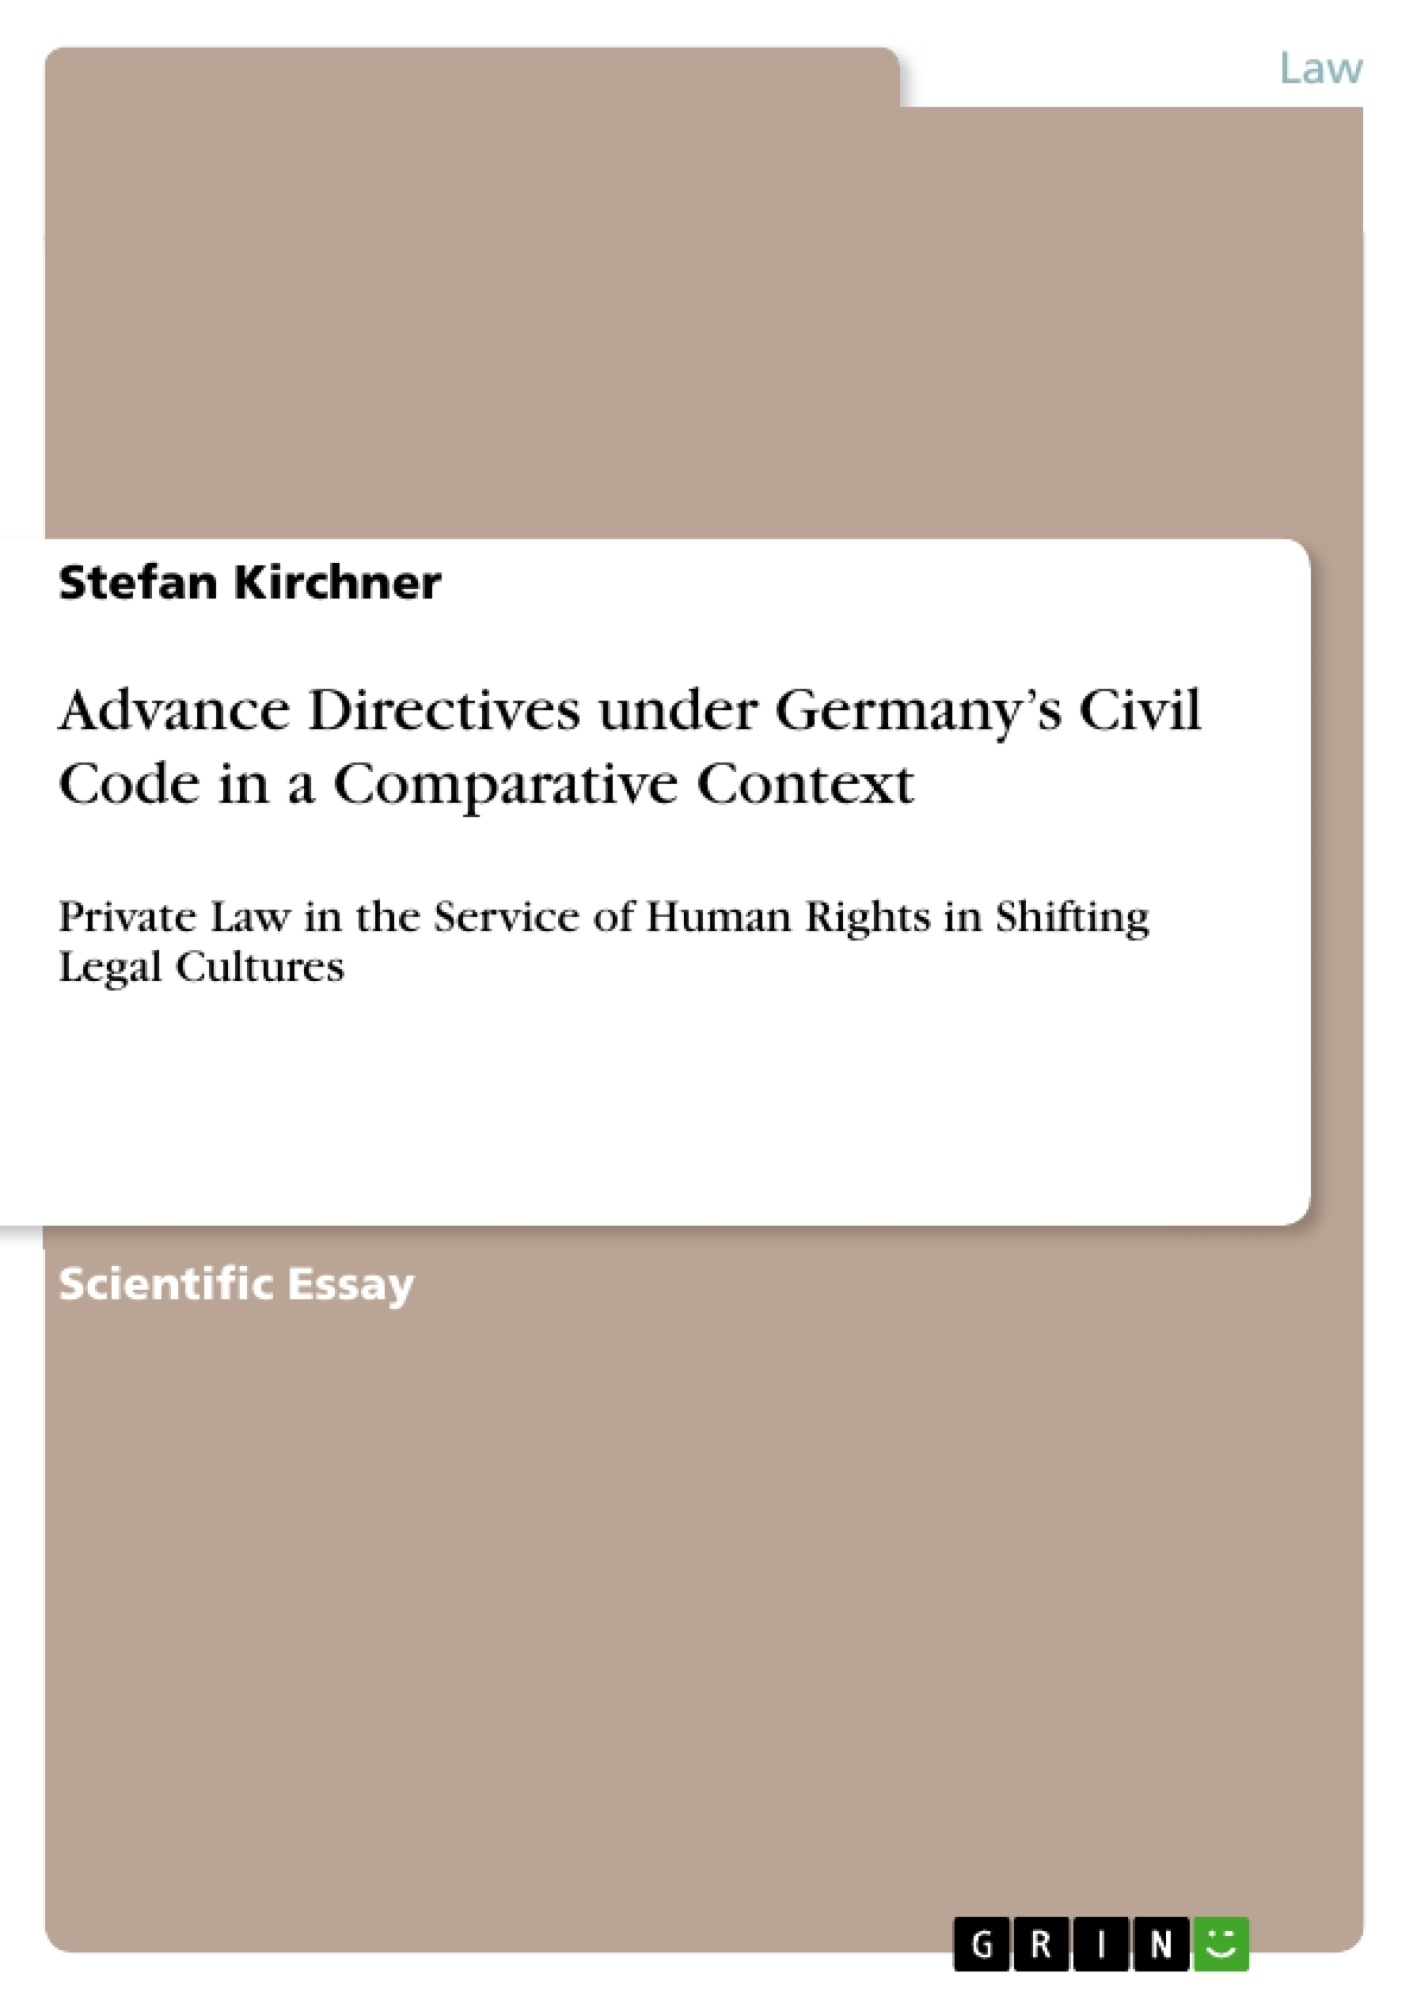 Title: Advance Directives under Germany's Civil Code in a Comparative Context